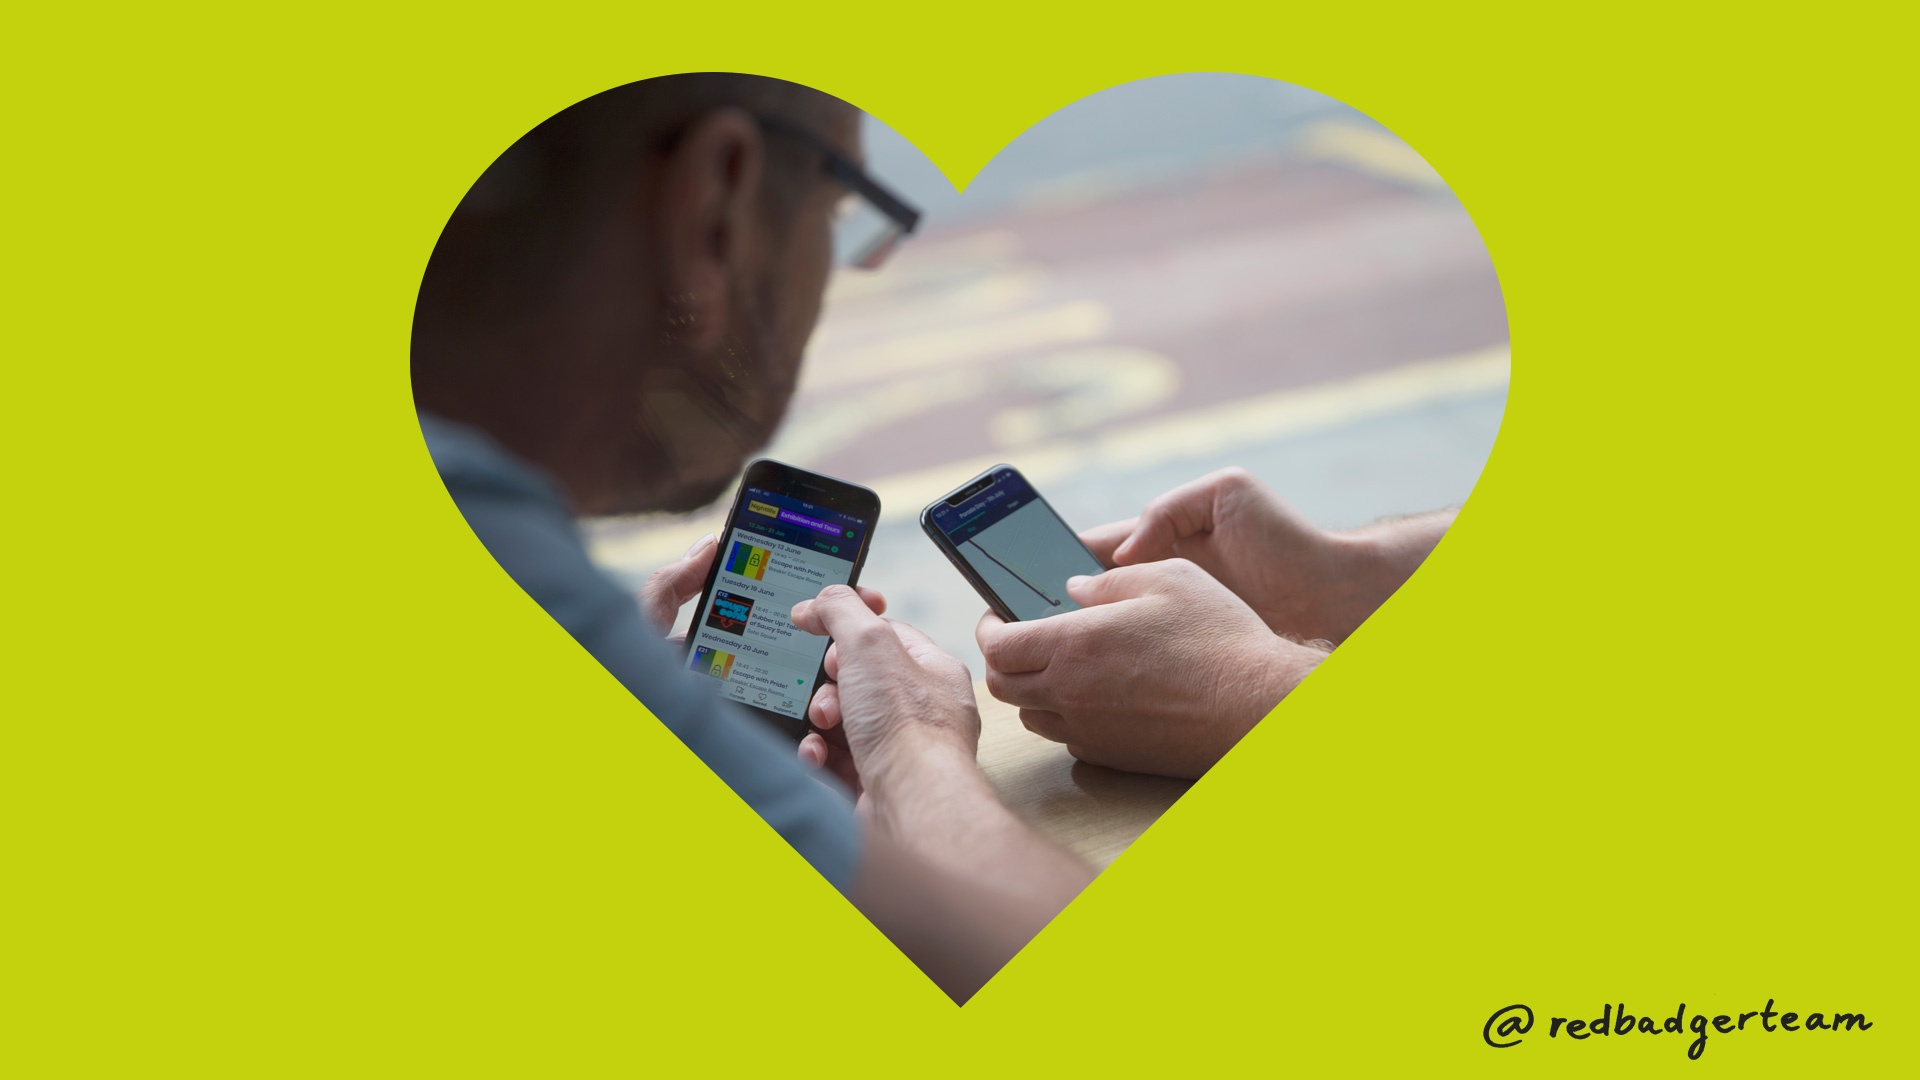 A heart shaped photo of two peoples phones on a lime green background